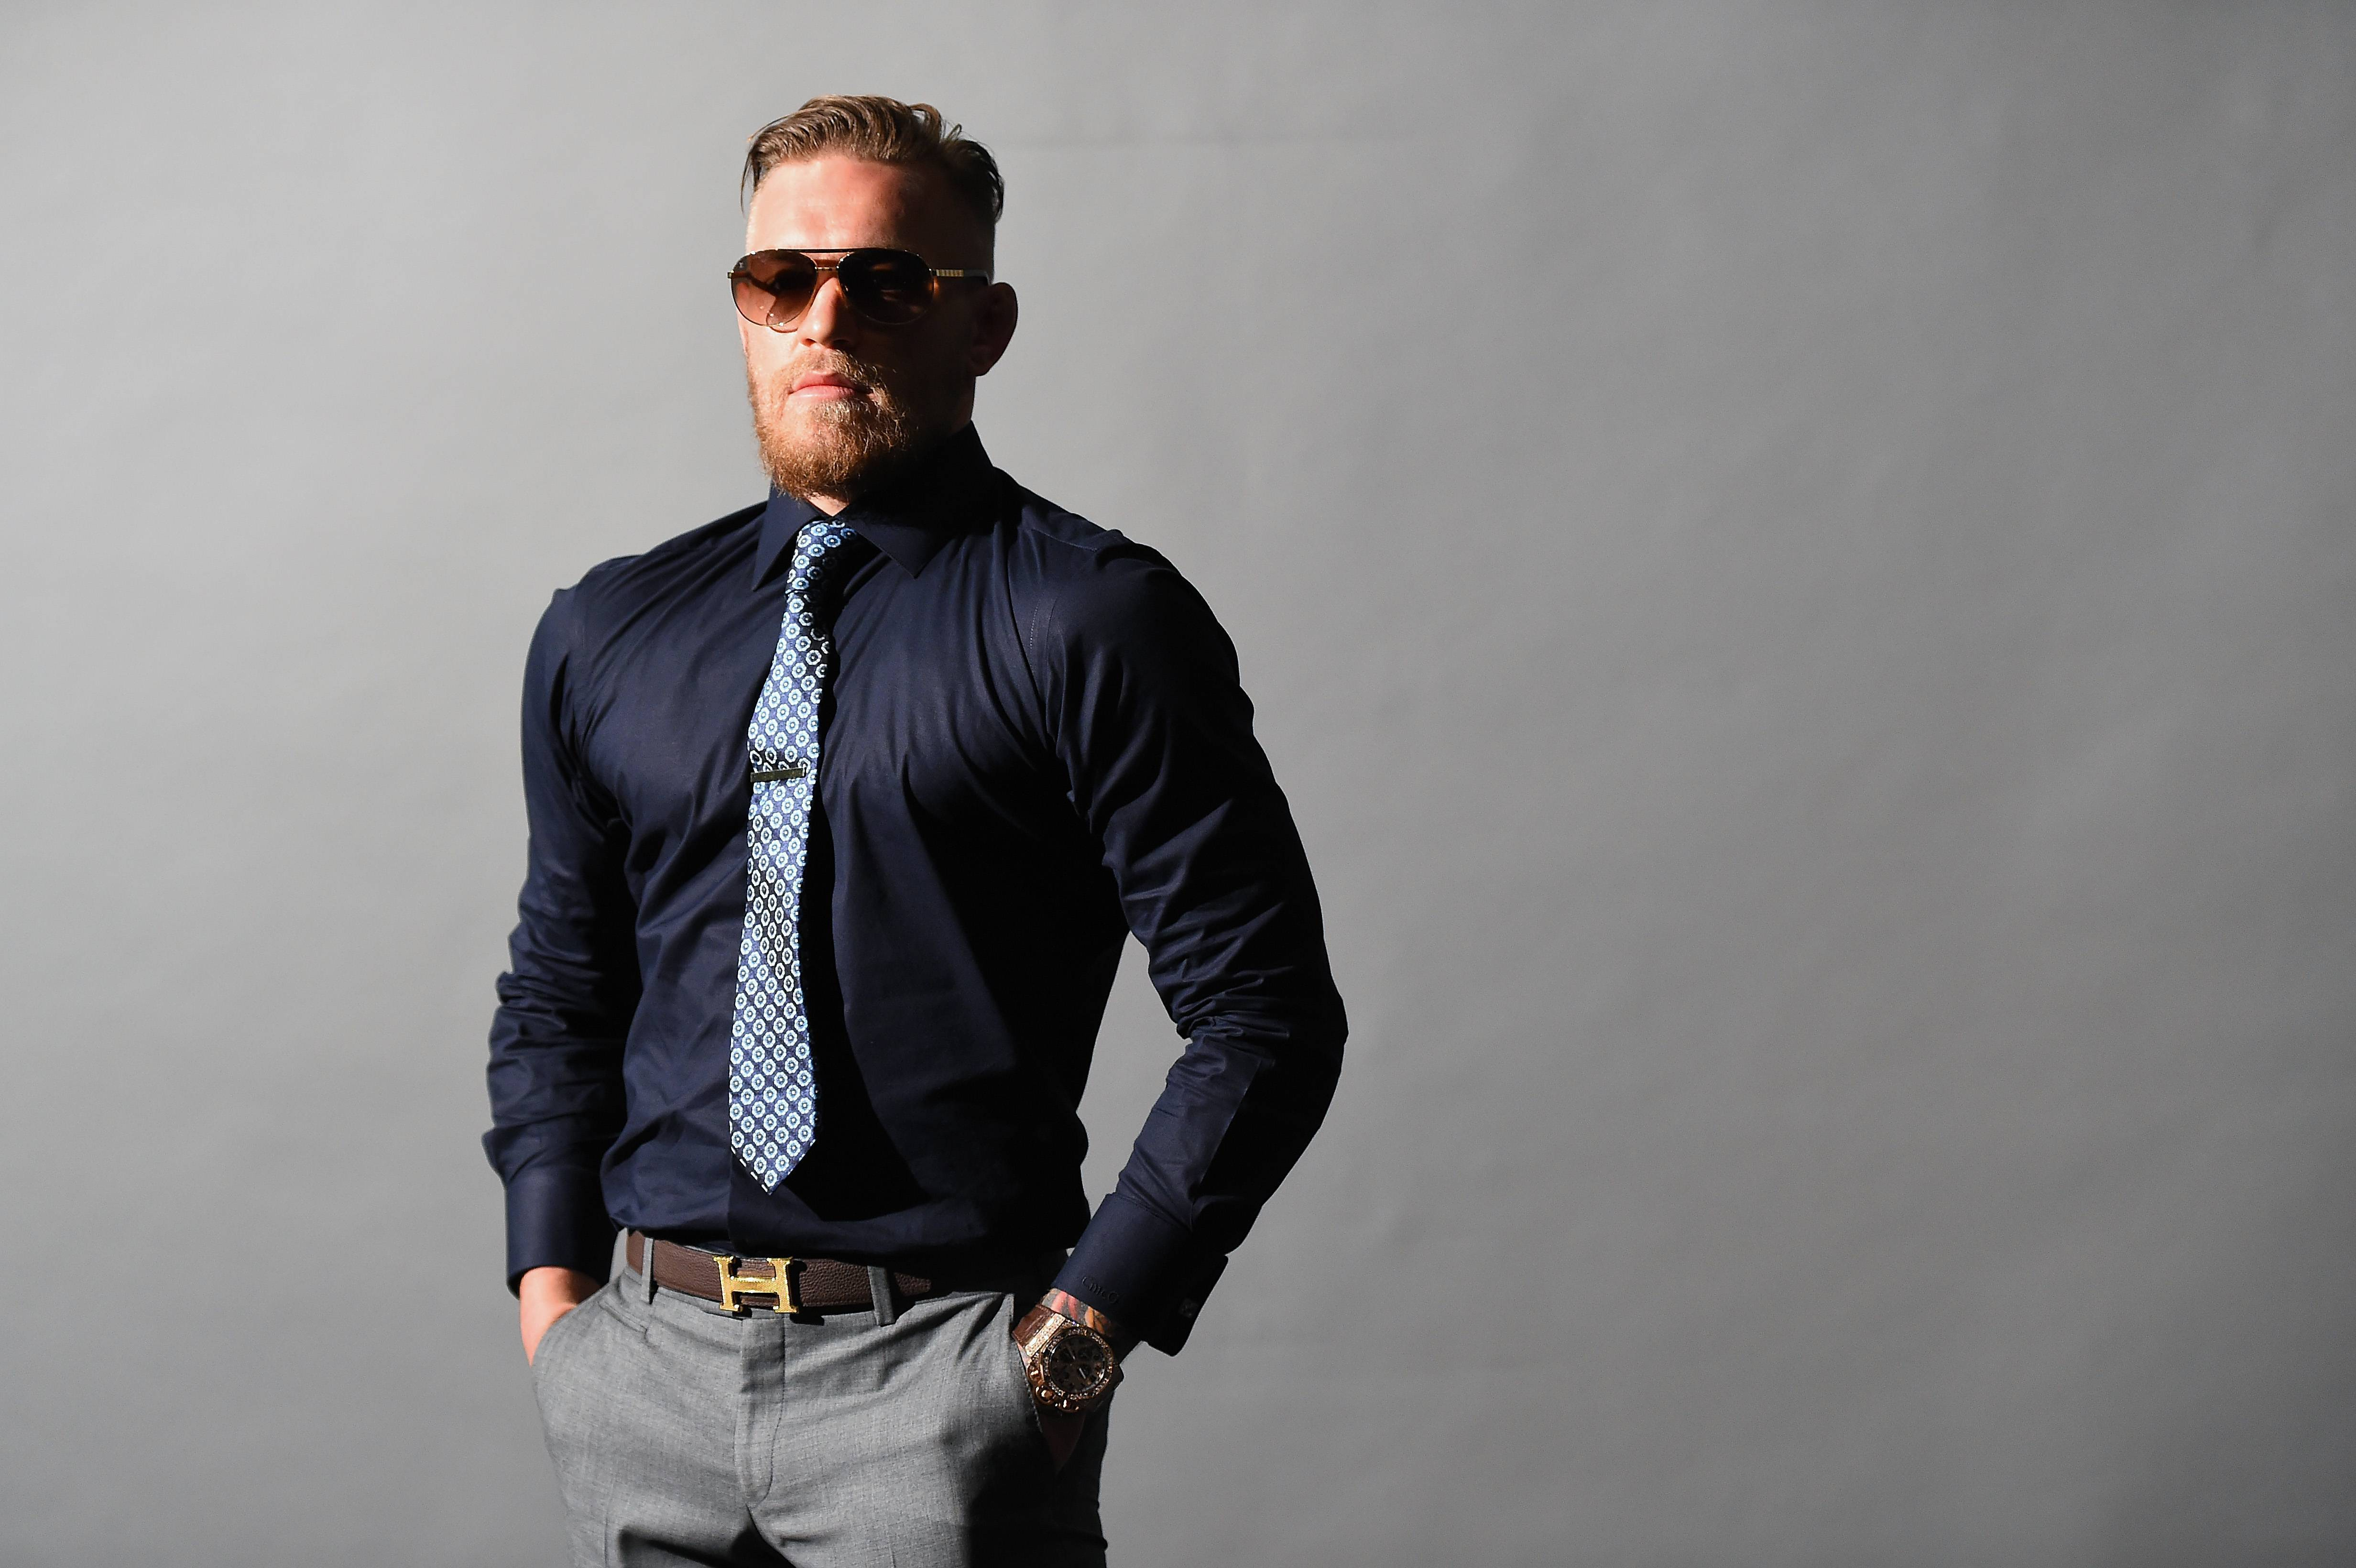 Conor McGregor High Quality Wallpapers